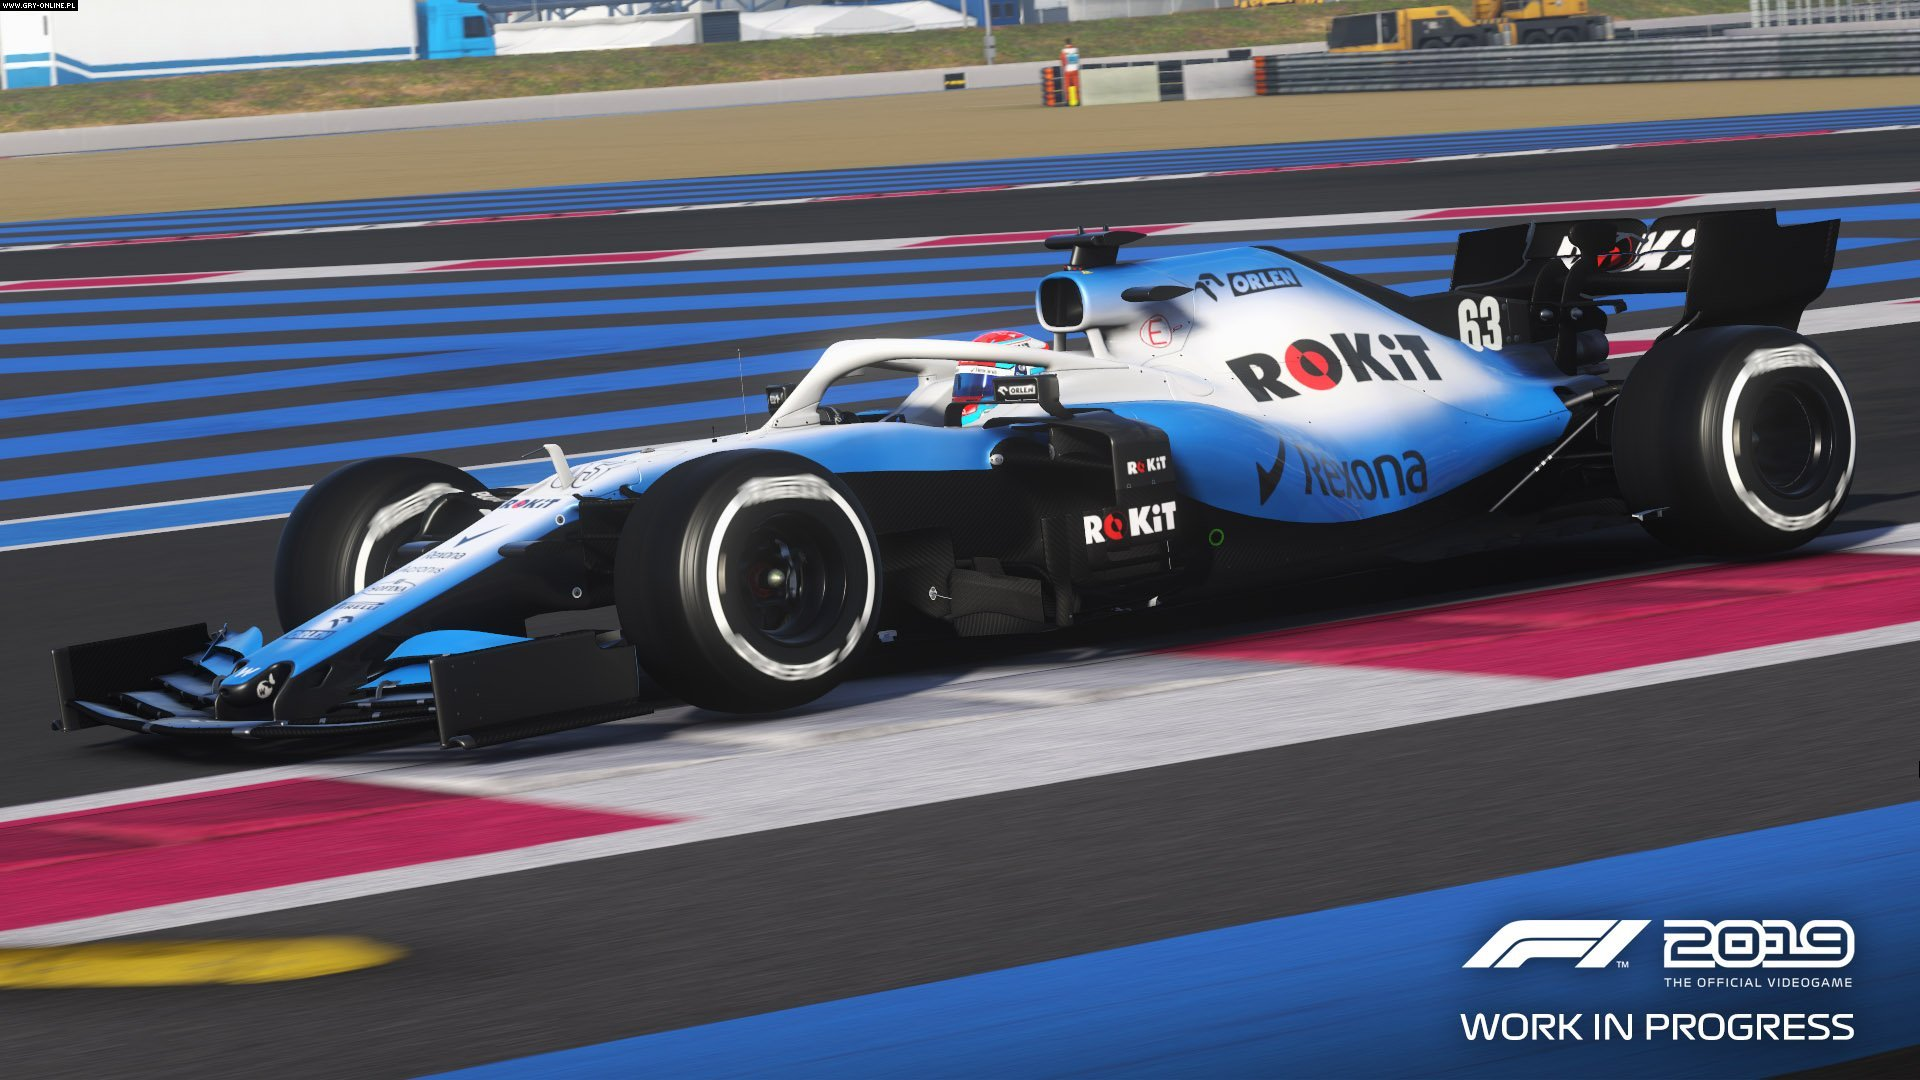 F1 2019 PC, PS4, XONE Games Image 10/62, Codemasters Software